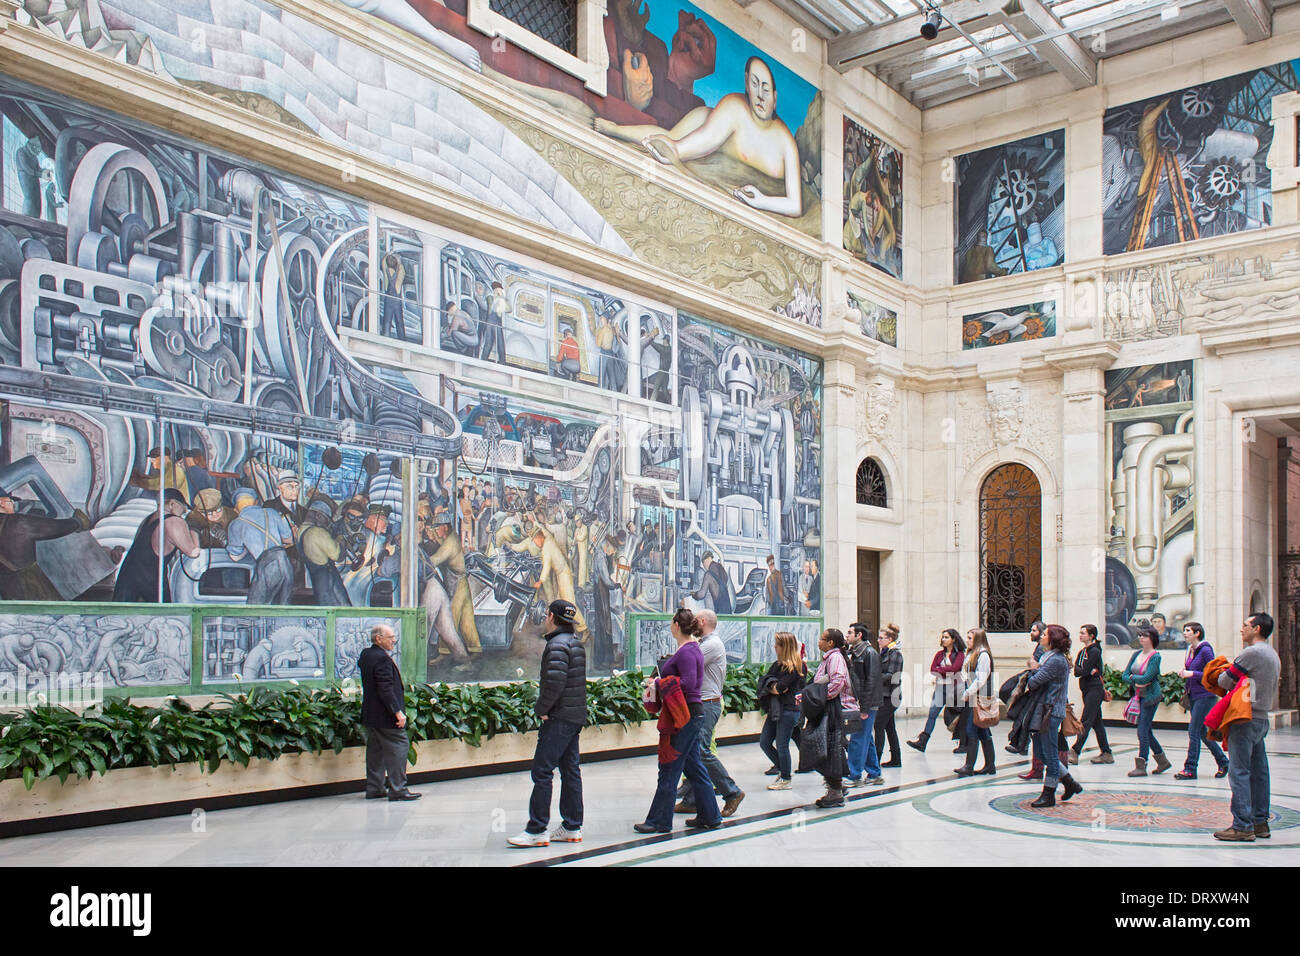 Detroit, Michigan - A tour guide tells visitors about Diego Rivera's 'Detroit Industry' murals at the Detroit Institute of Arts. - Stock Image